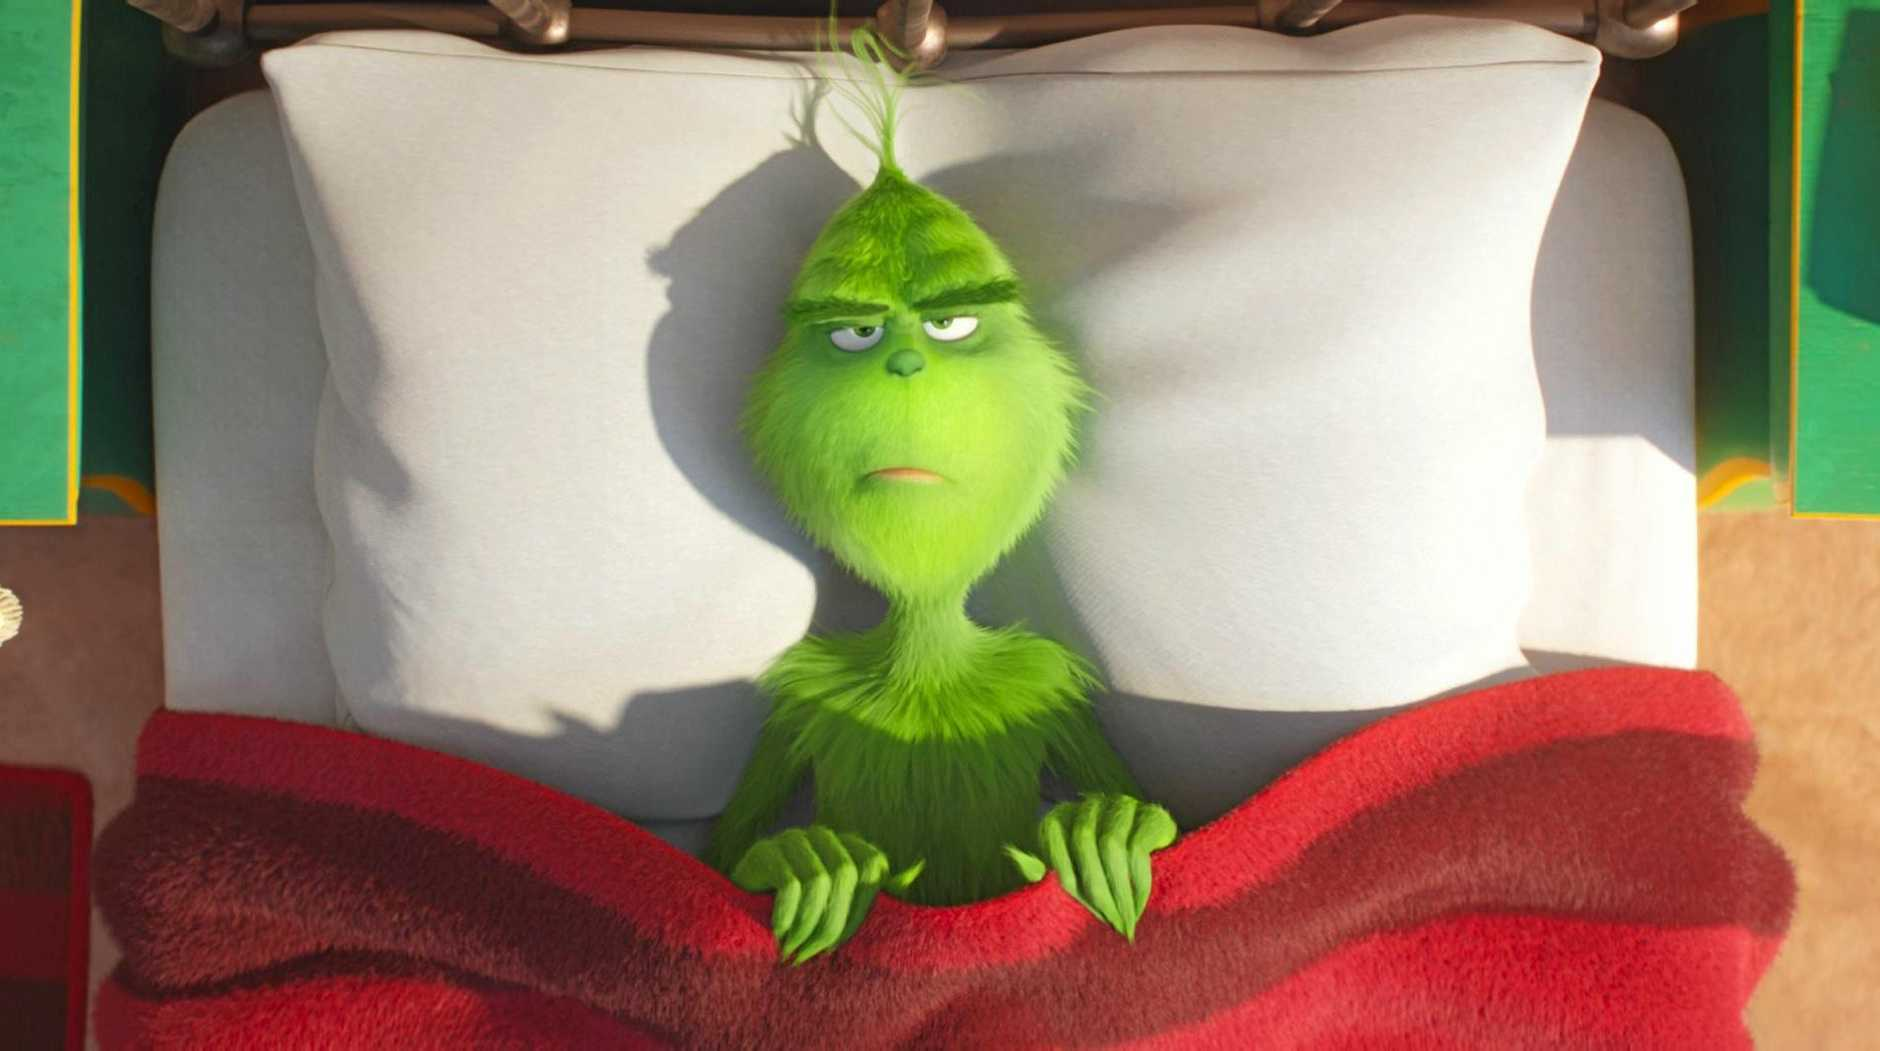 Grinch, voiced by Benedict Cumberbatch, in scene from the movie The Grinch. Supplied by Universal Pictures.